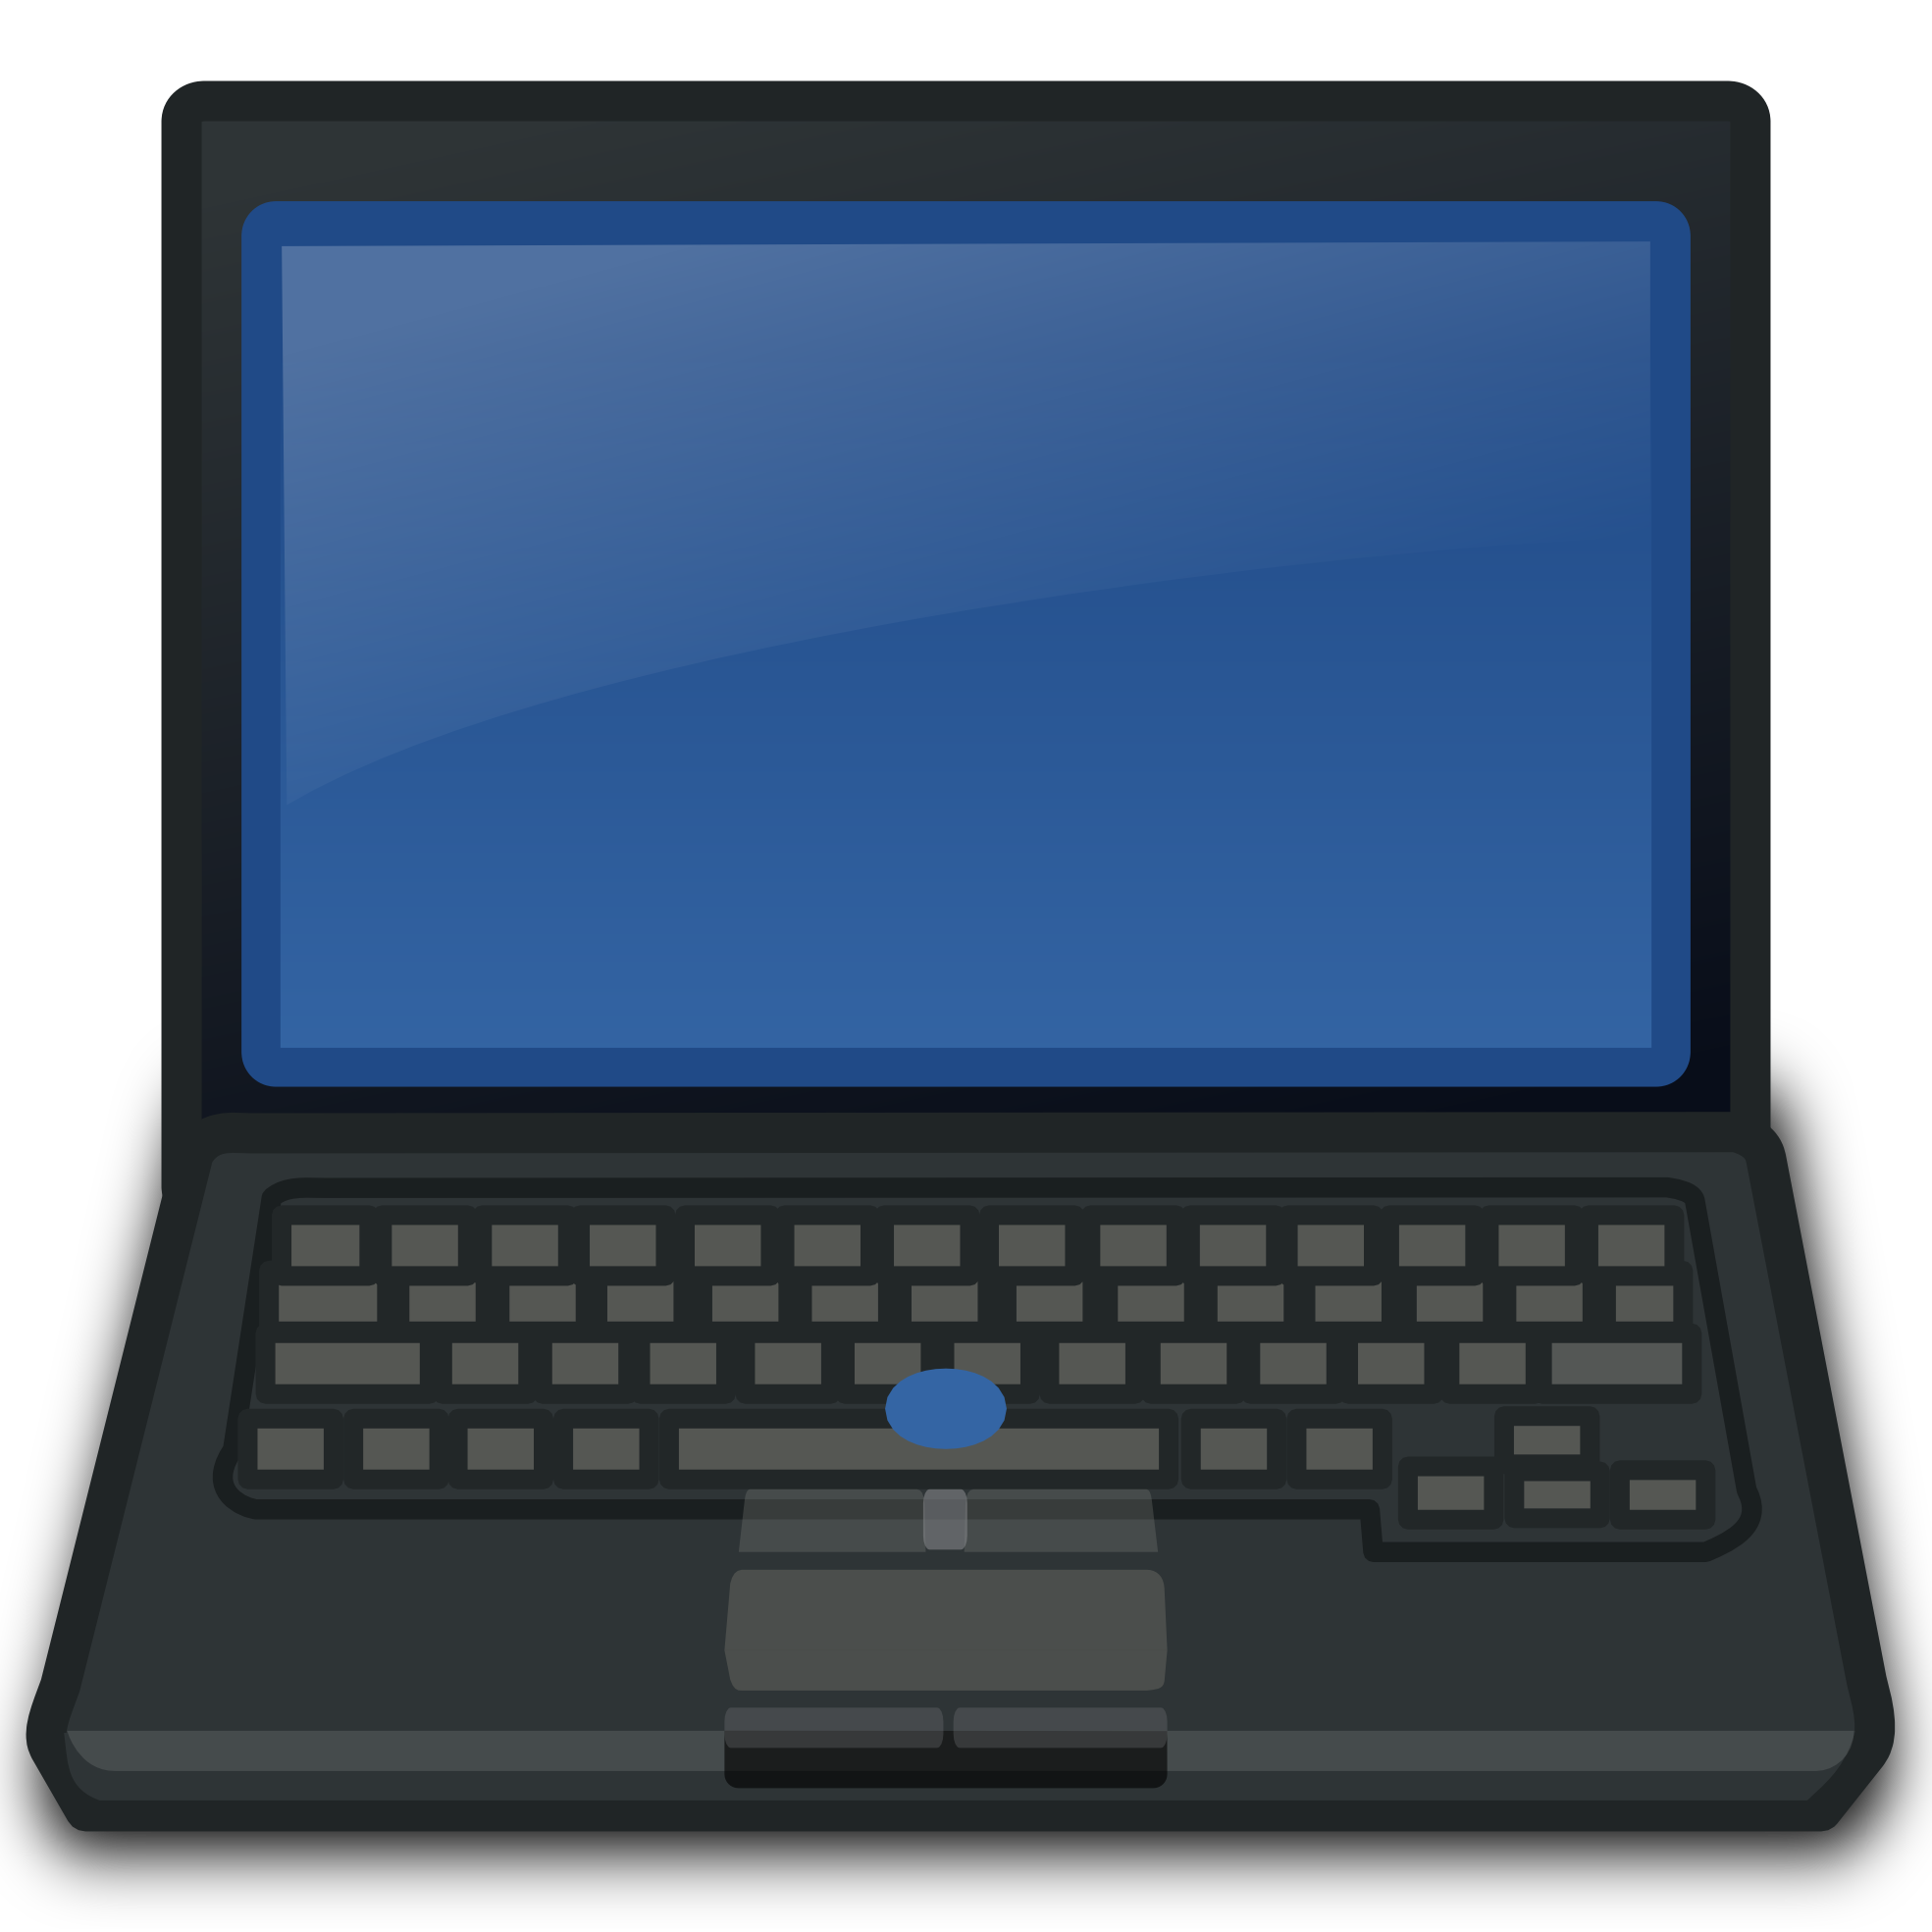 Laptop Computer Clipart For .-Laptop Computer Clipart For .-16